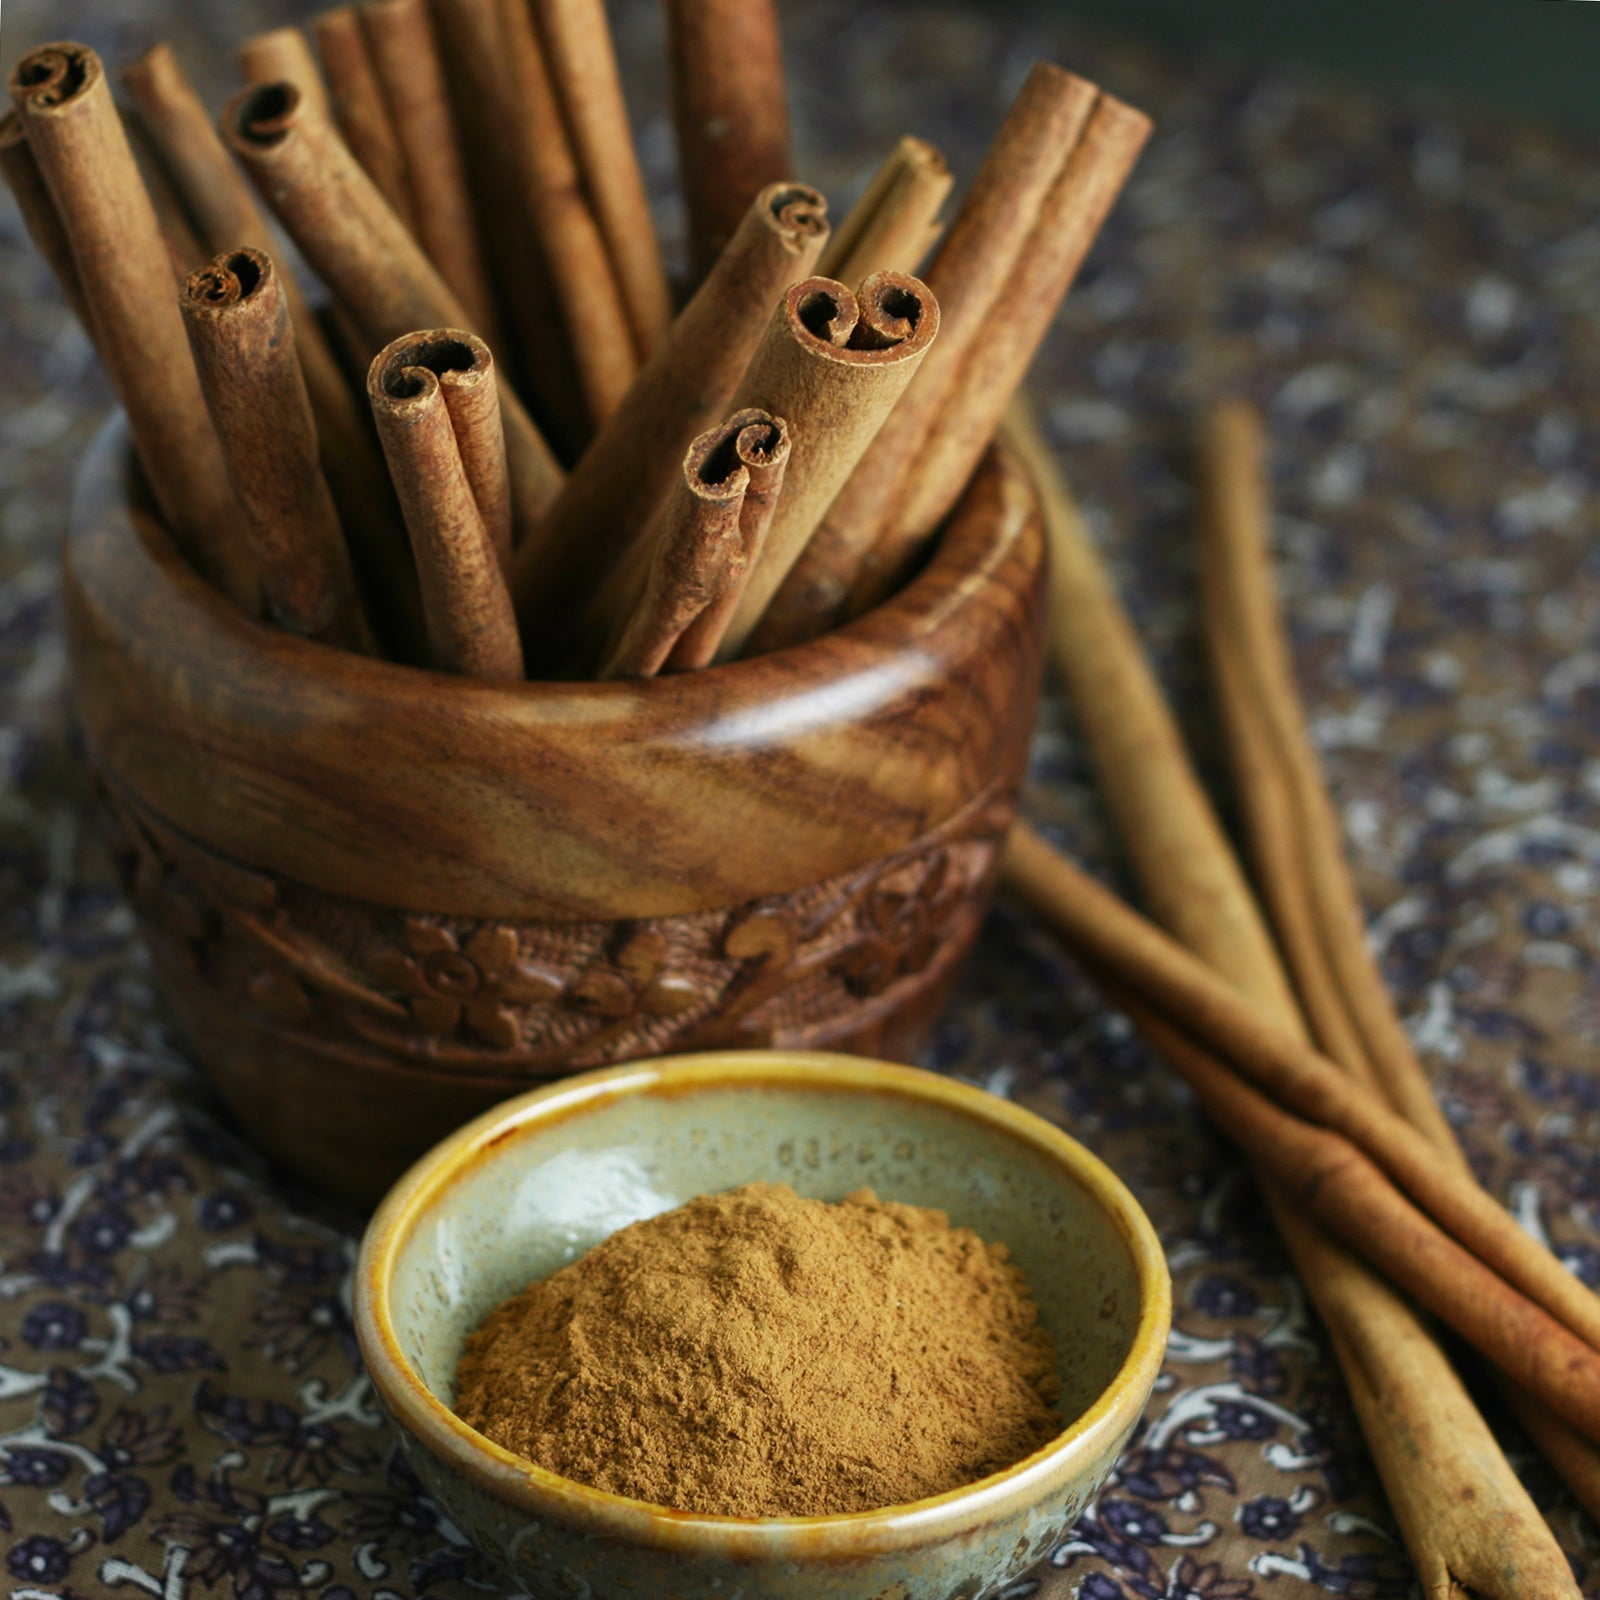 Cinnamon, Indonesian Korintje